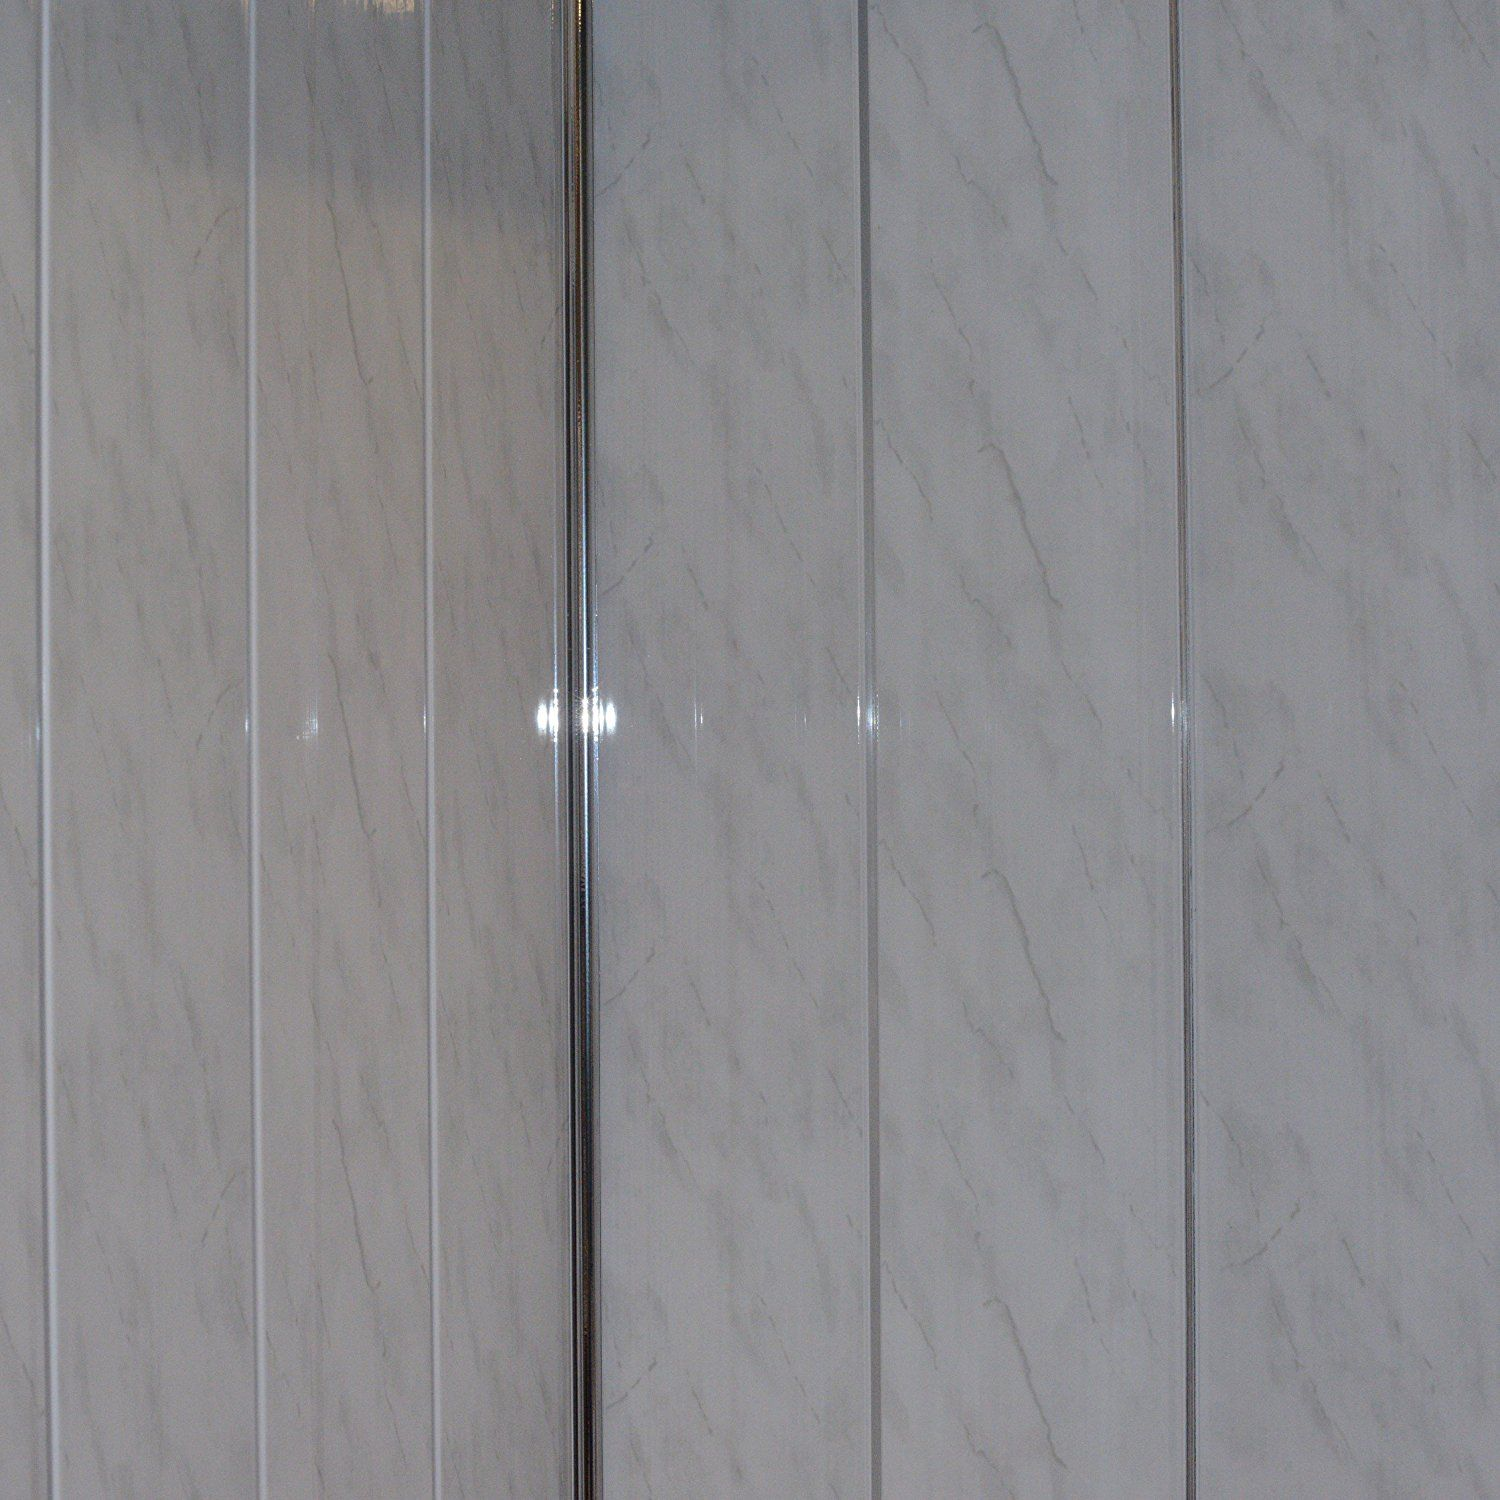 Grey Marble Bathroom Wall Panels Tile Effect Cladding Used In Kitchen Office Ceiling And Bathroom Wall Panels Bathroom Wall Cladding Pvc Bathroom Wall Panels